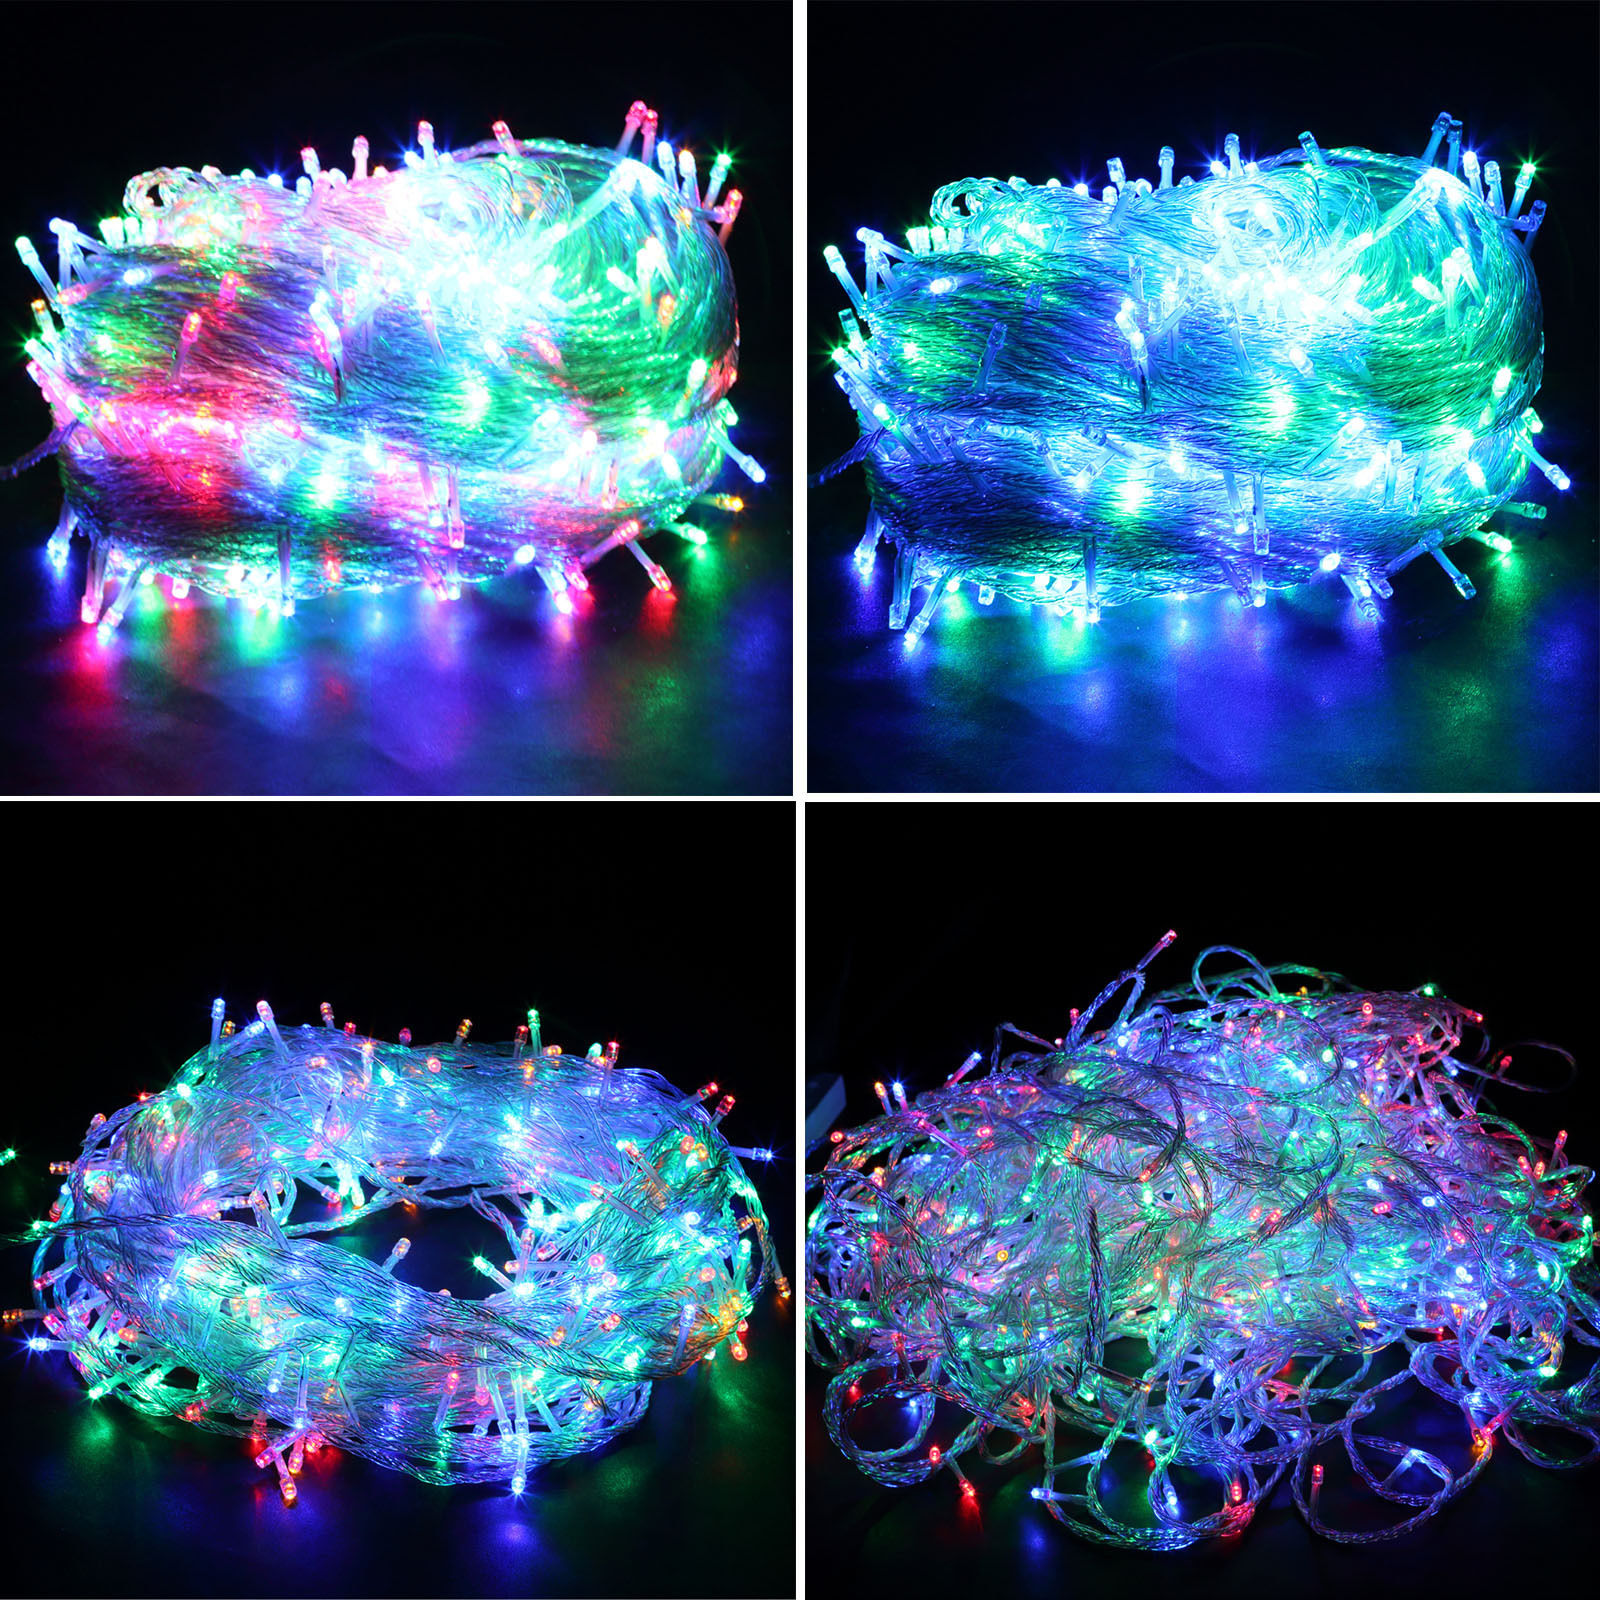 Outdoor Easter String Lights : 1000 LEDs Fairy String Light Party Easter Wedding Outdoor Mall Room US 656 Ft eBay